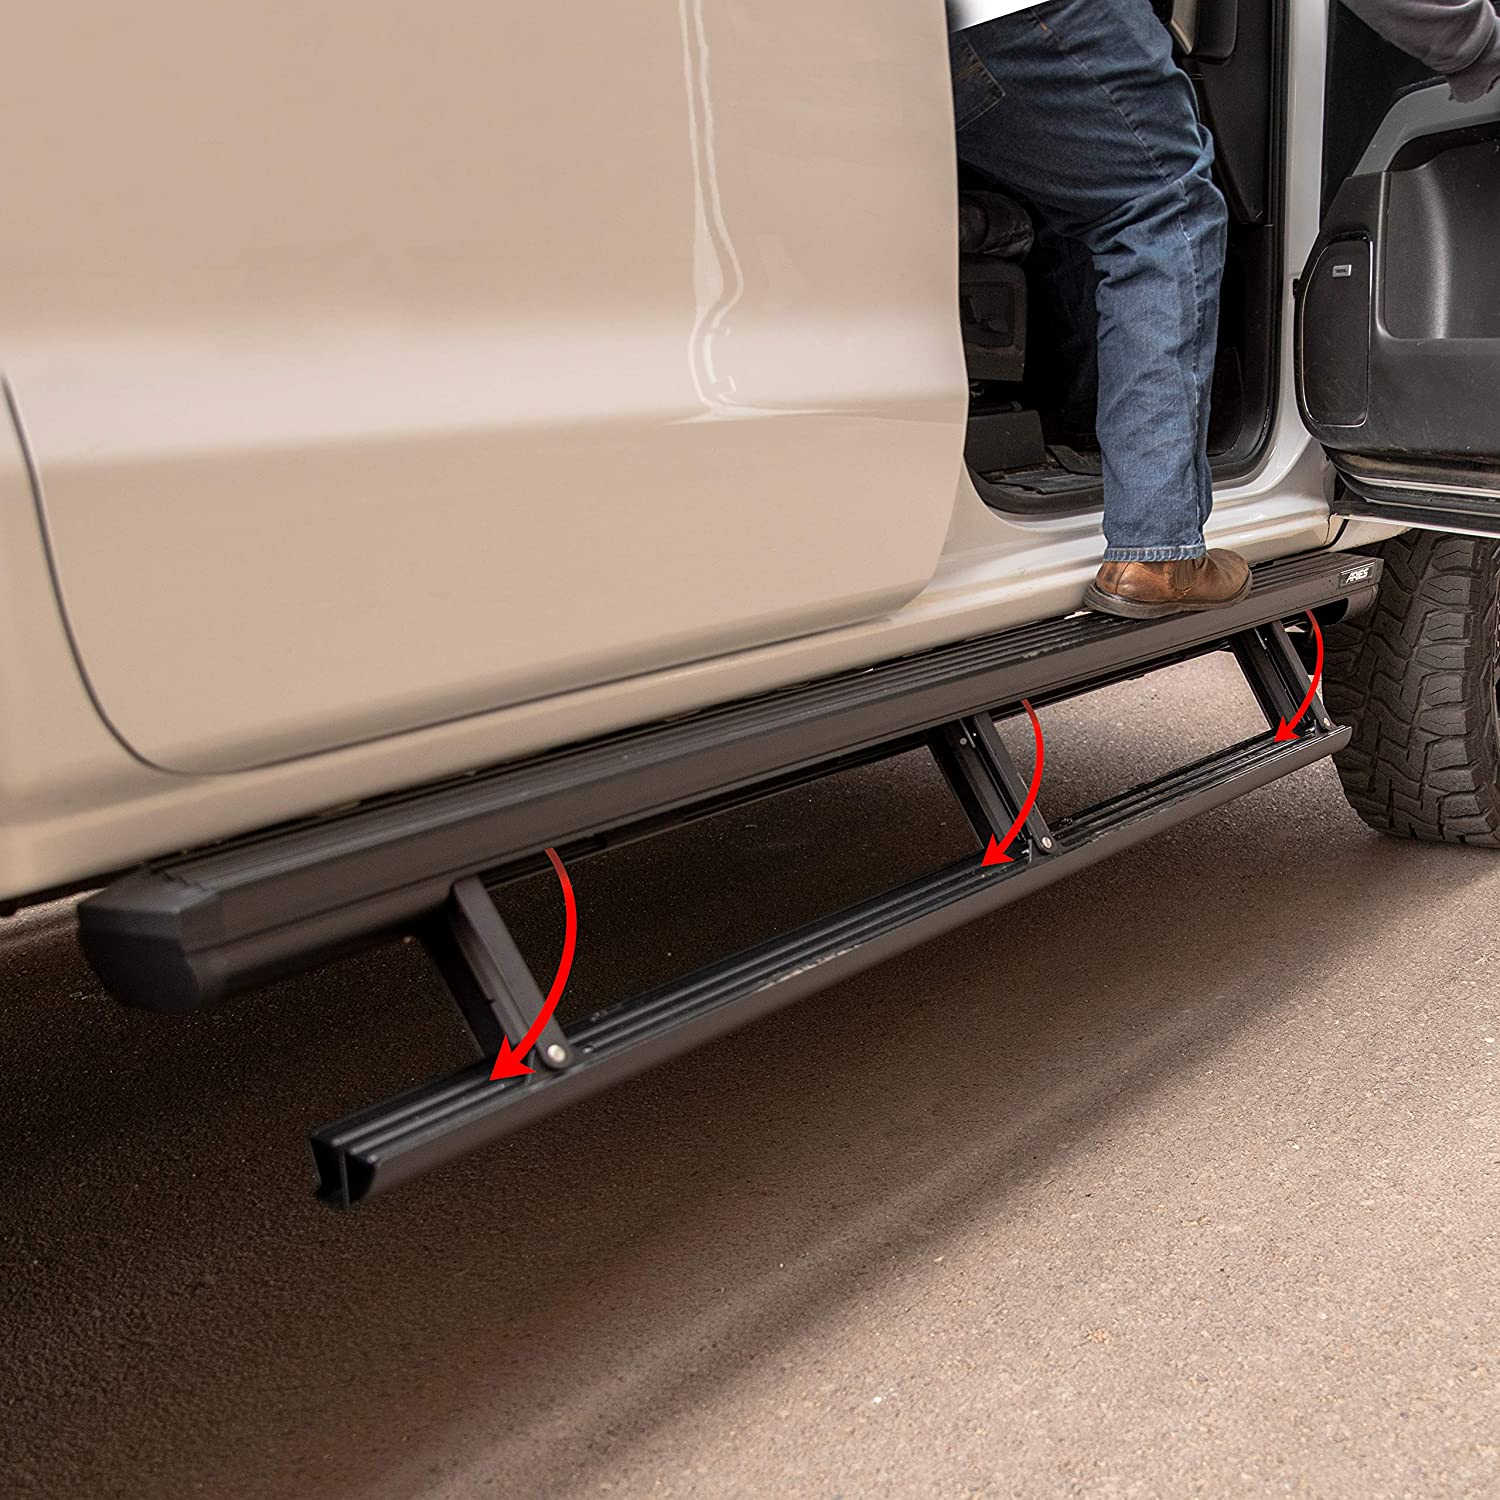 Aries 3047912 Actiontrac Truck Powered Running Boards With Retractable Electric Side Steps Black 79 Inch Fits Select Dodge Ram 1500 2500 3500 Crew